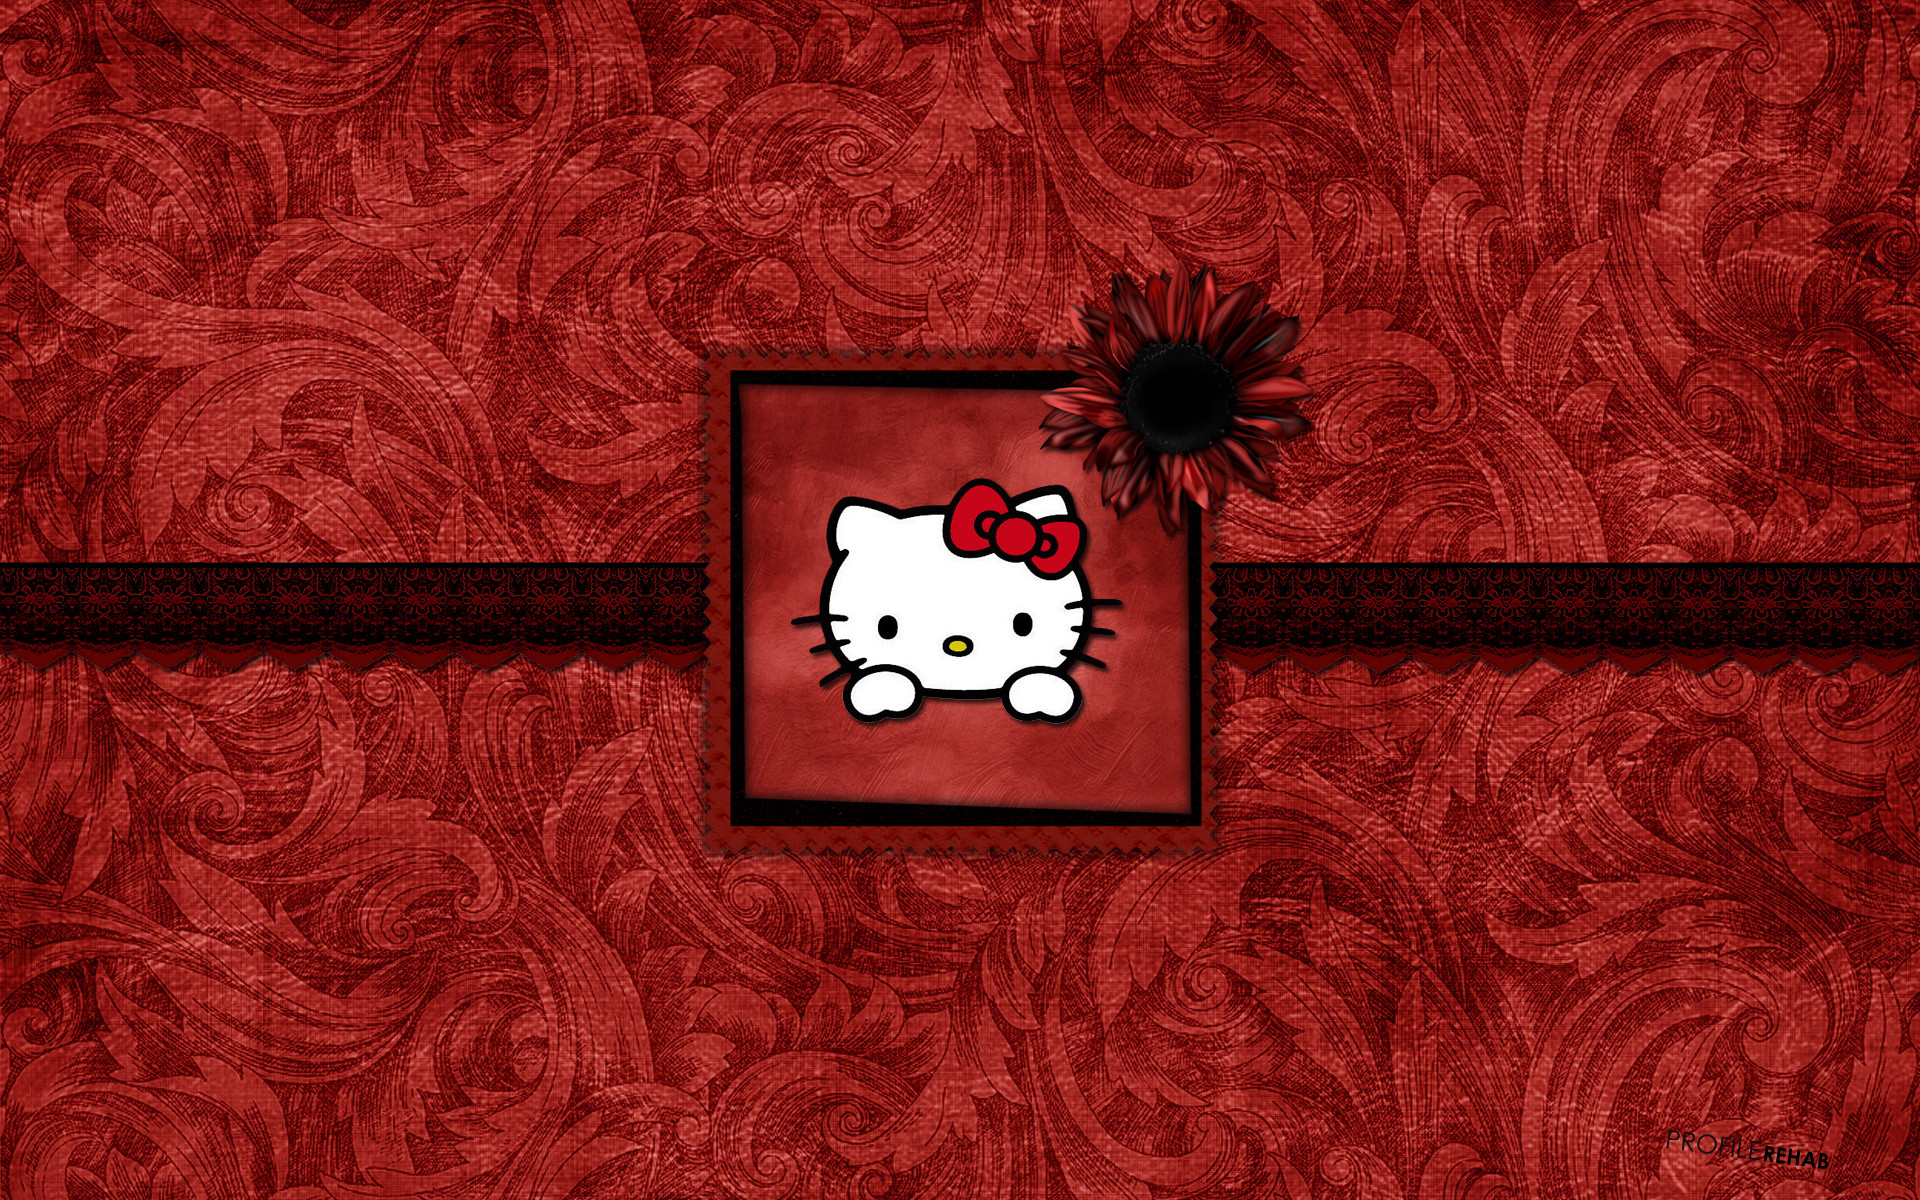 1920x1200 [] Black & Red Hello Kitty Wallpaper - Free Hello Kitty Background  - Wallpaper Download - Profilerehab